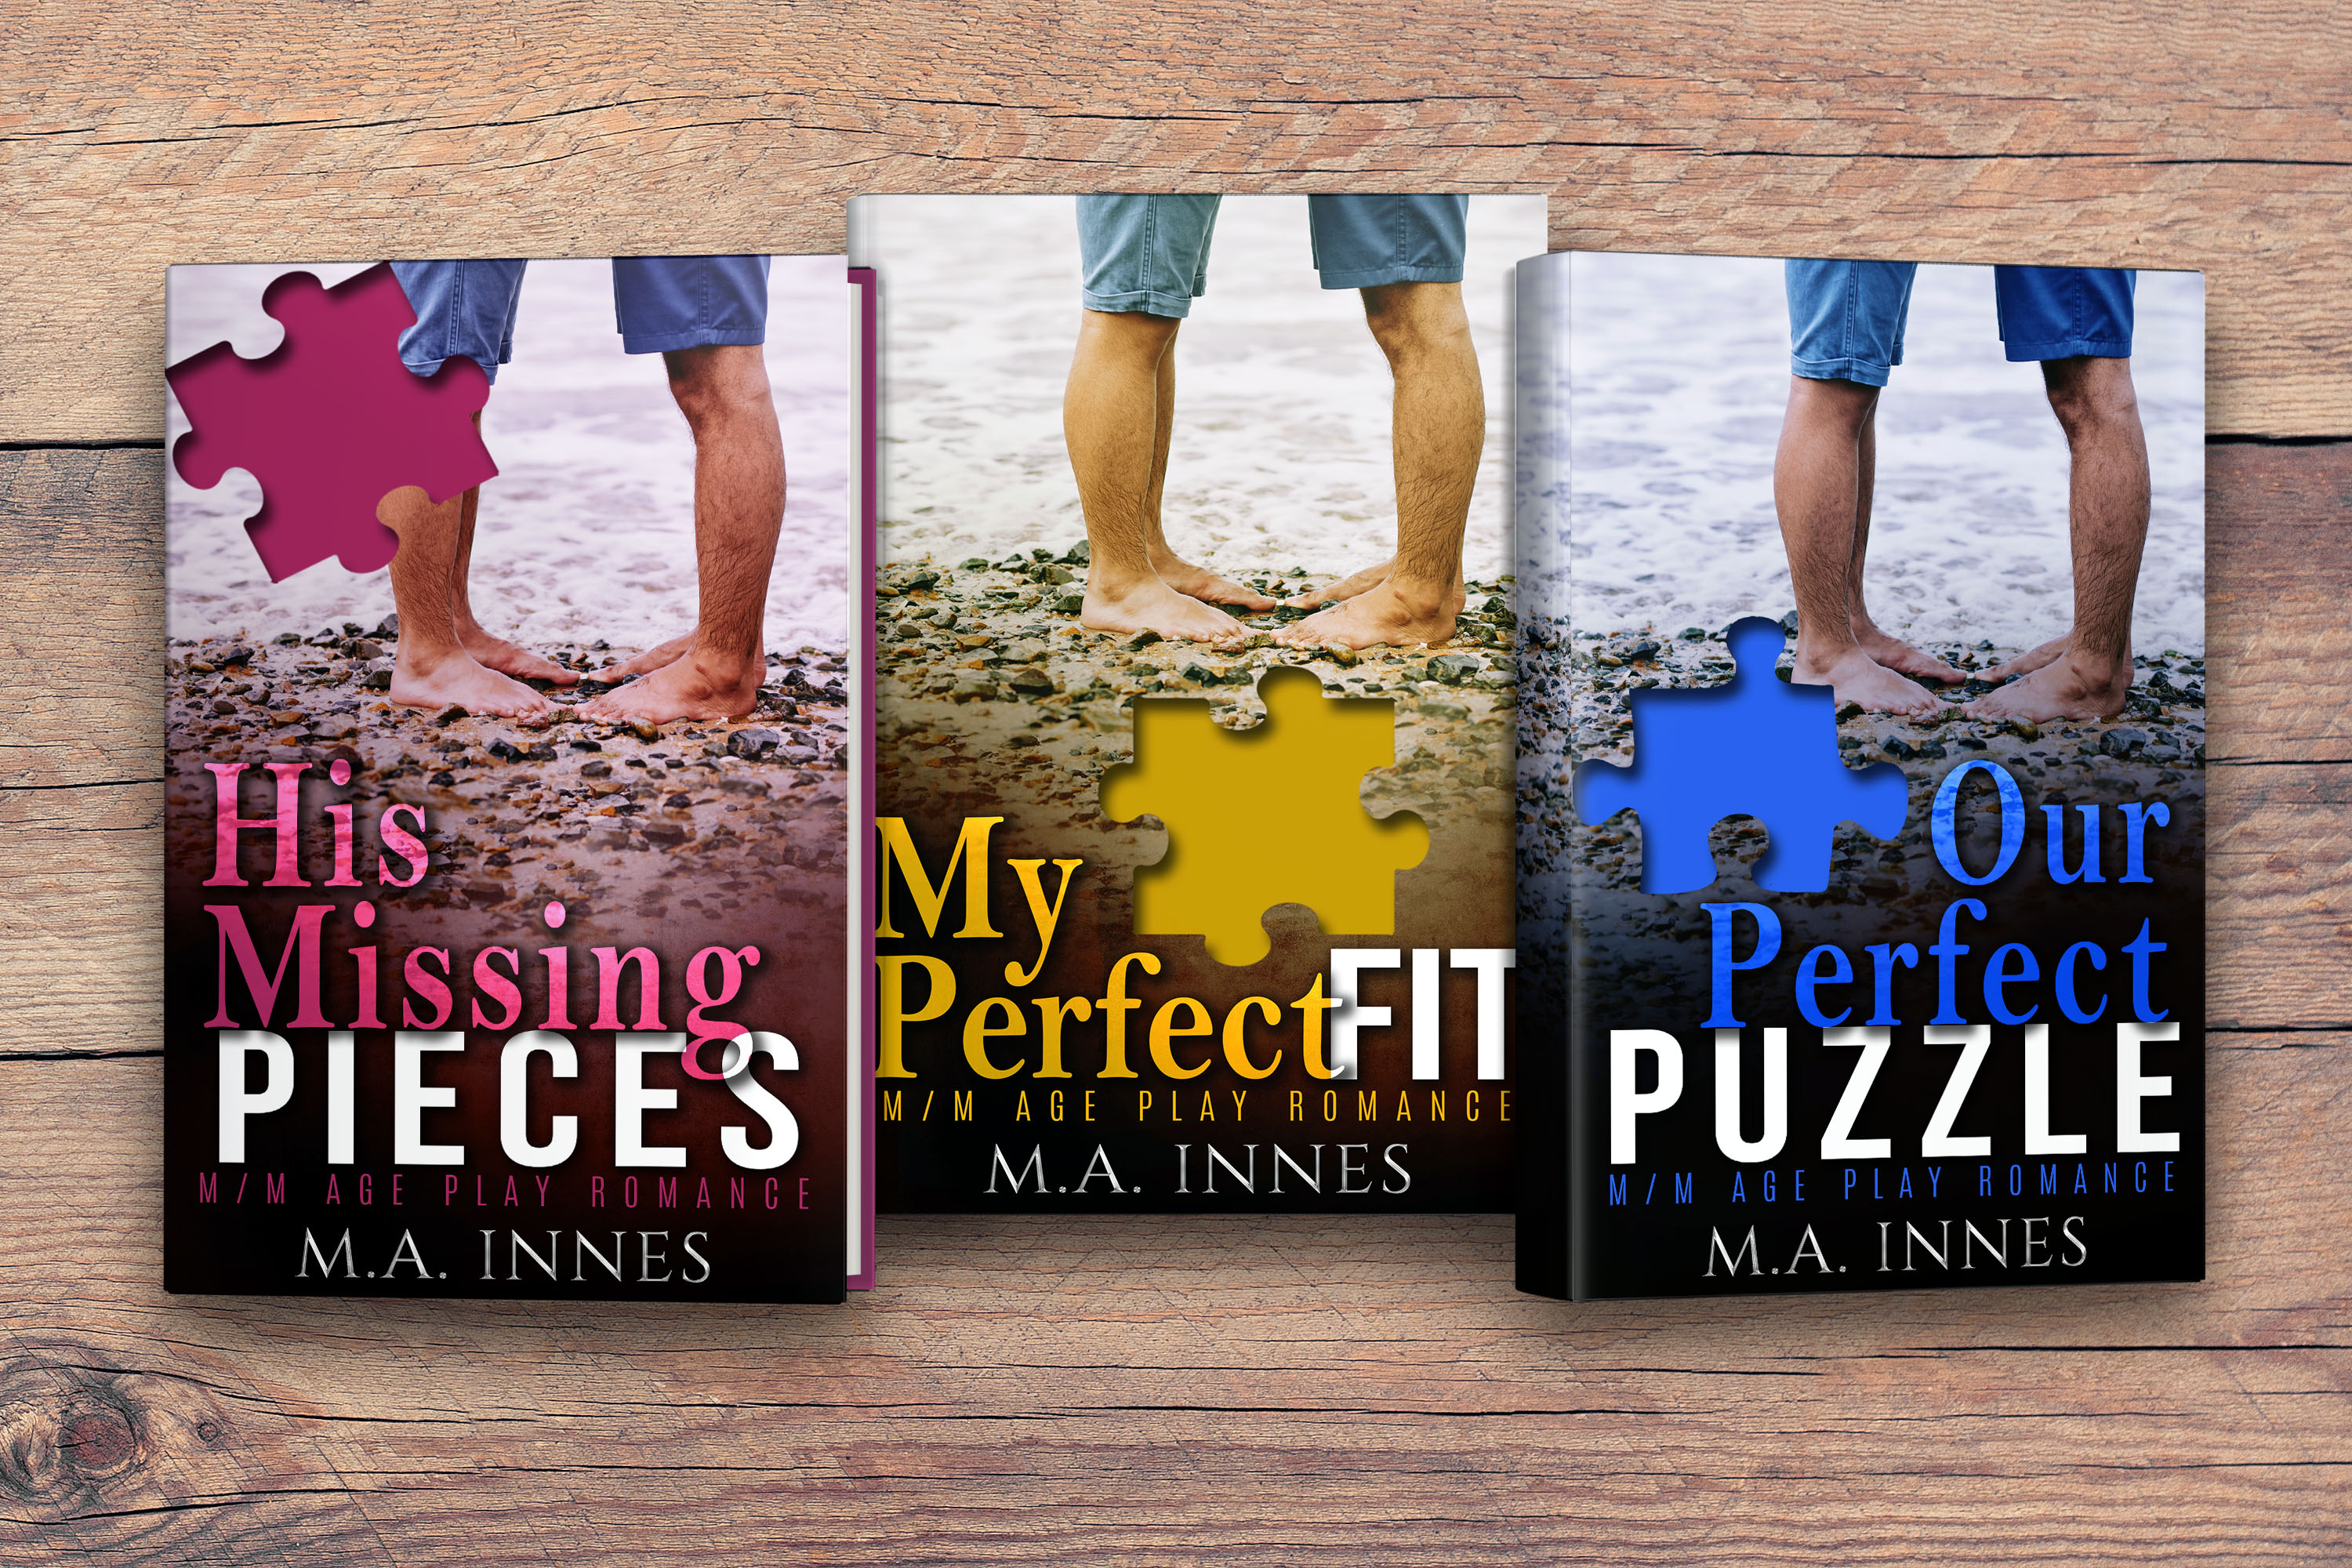 Get His Missing Pieces by M.A. Innes on Amazon & Kindle Unlimited